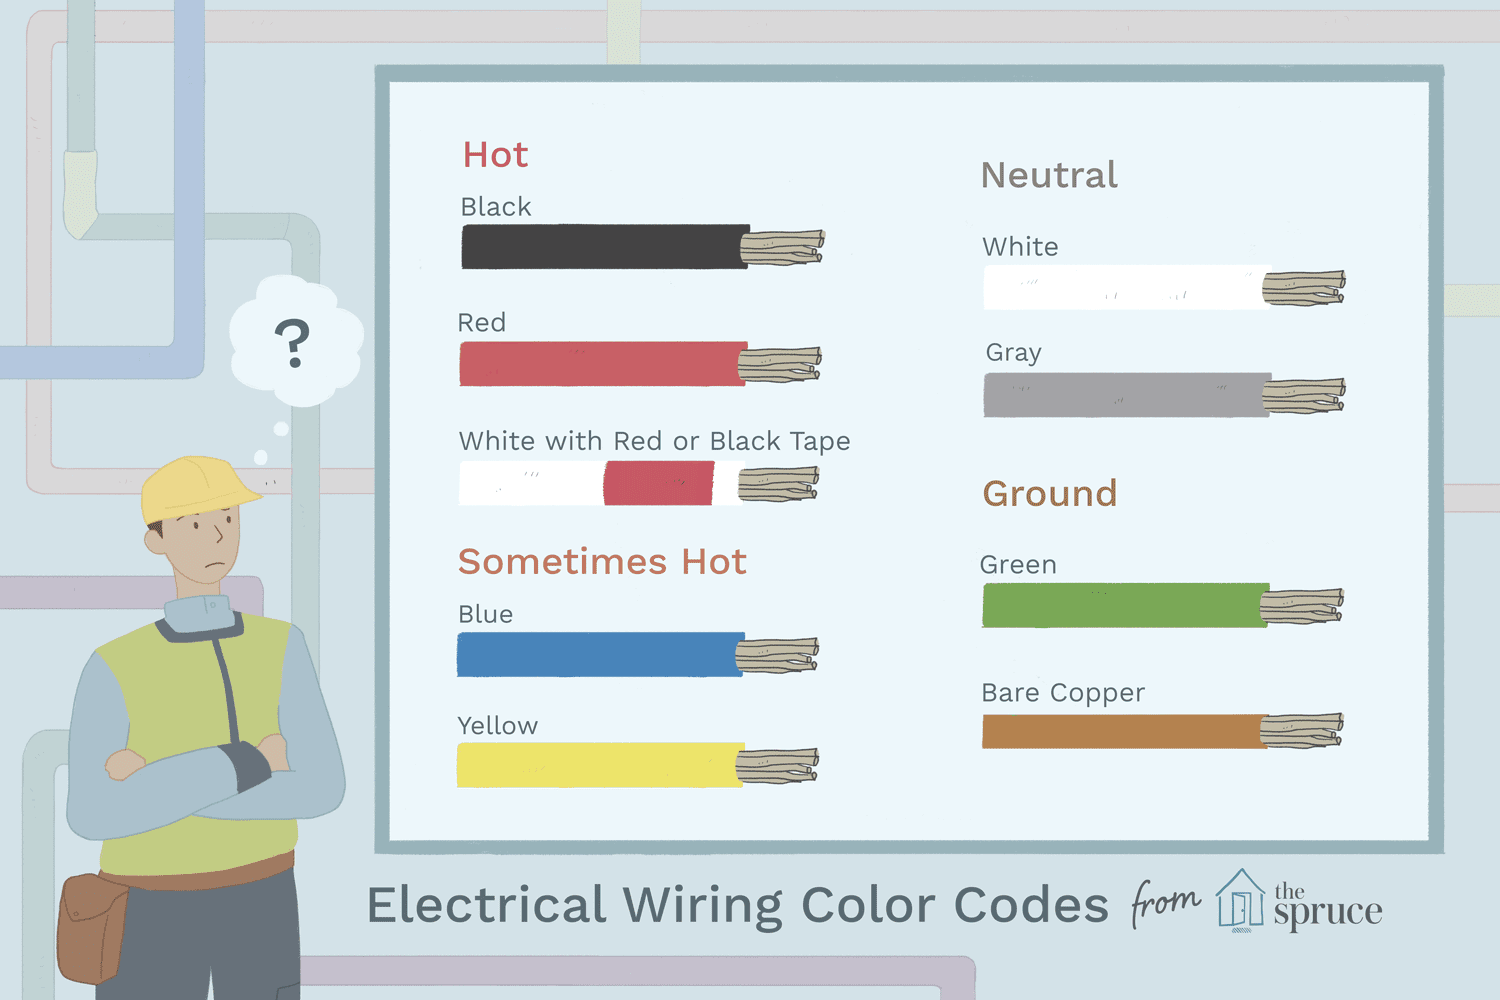 Electrical Wiring Color Coding System A Typical House In